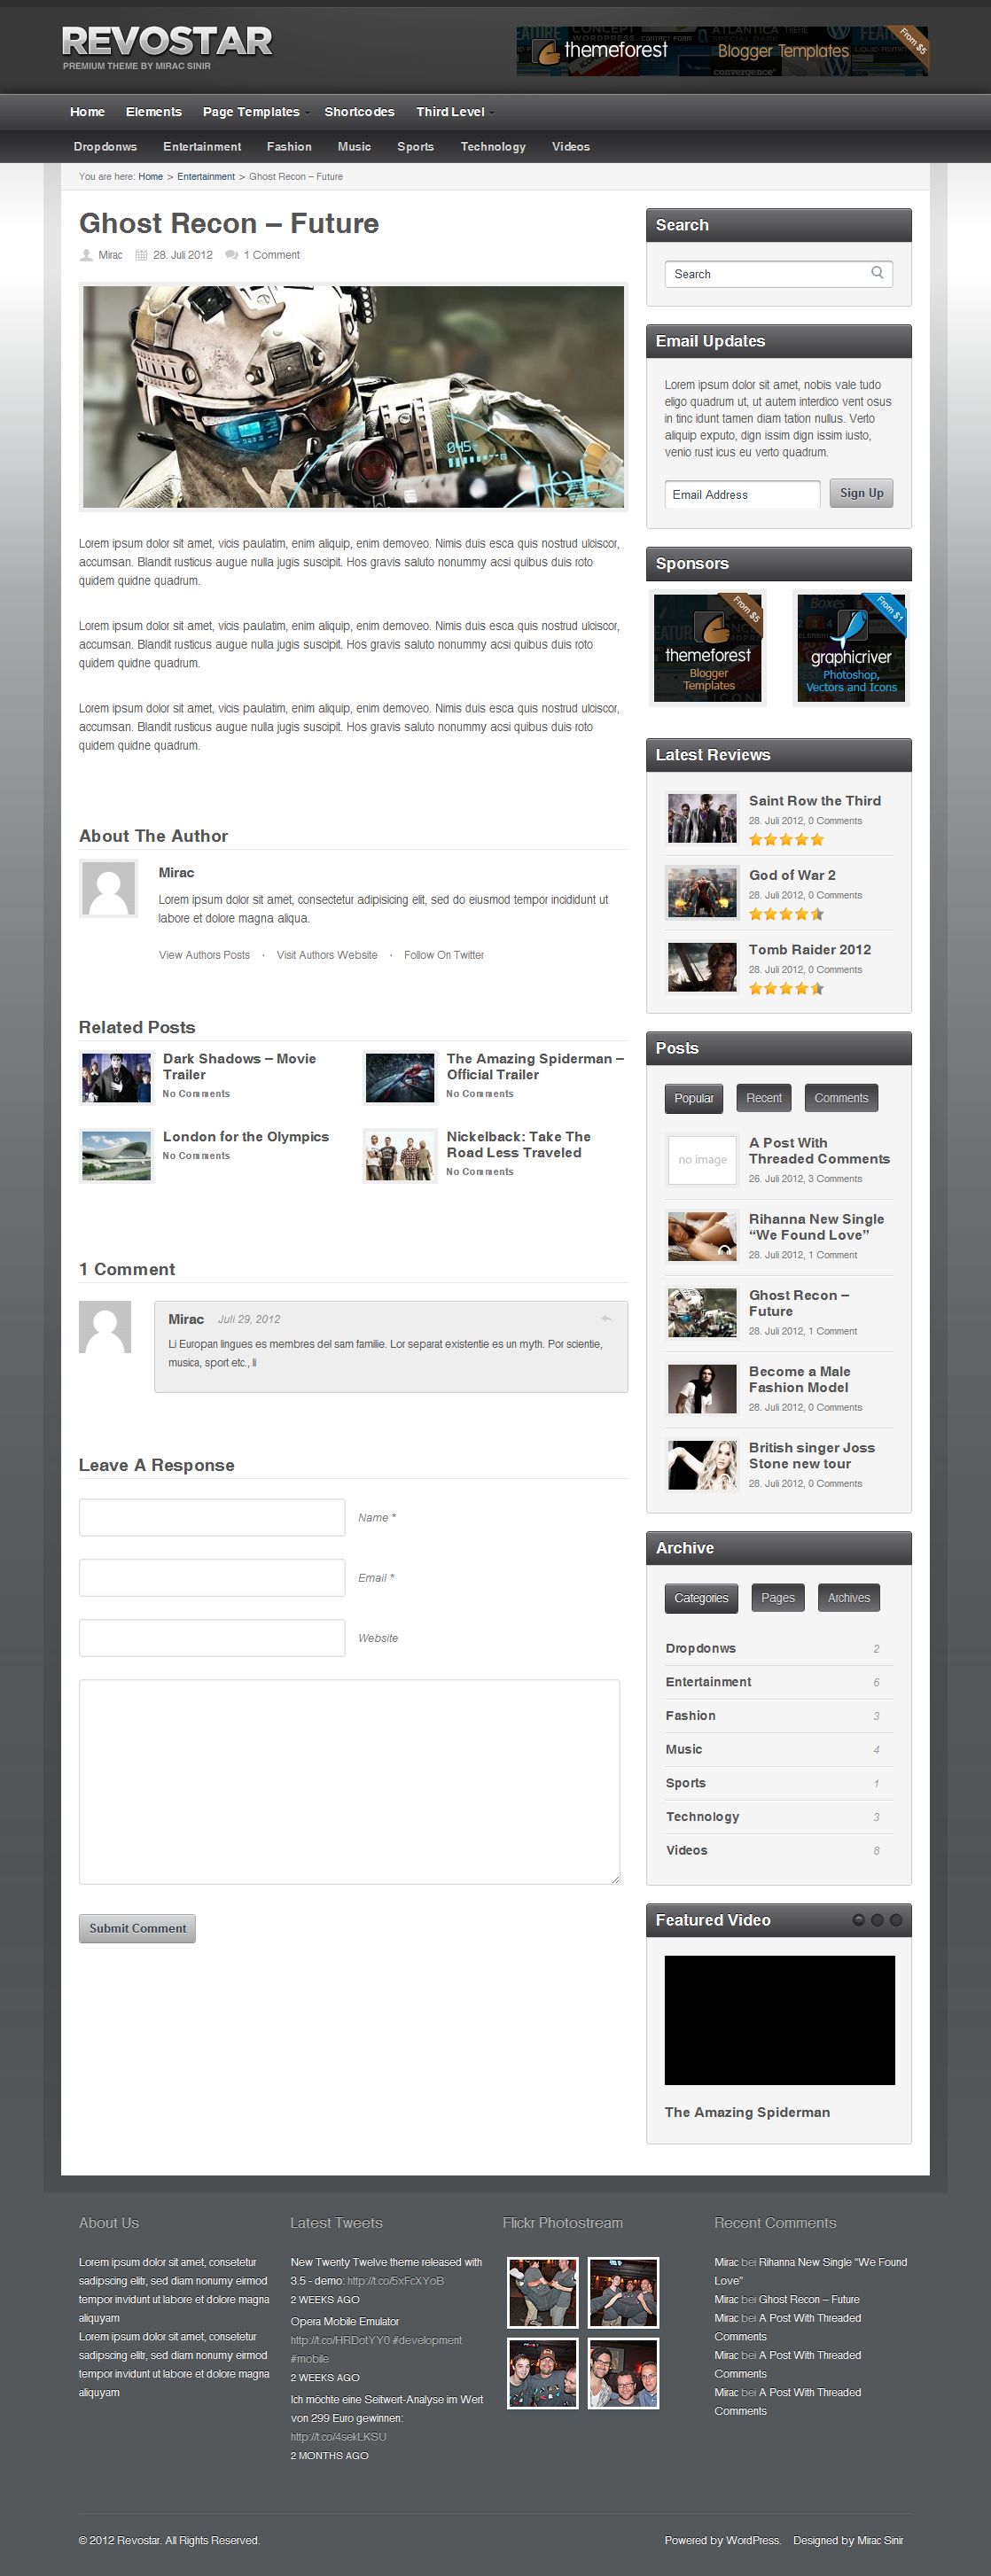 RevoStar - WordPress Magazine/Review Theme